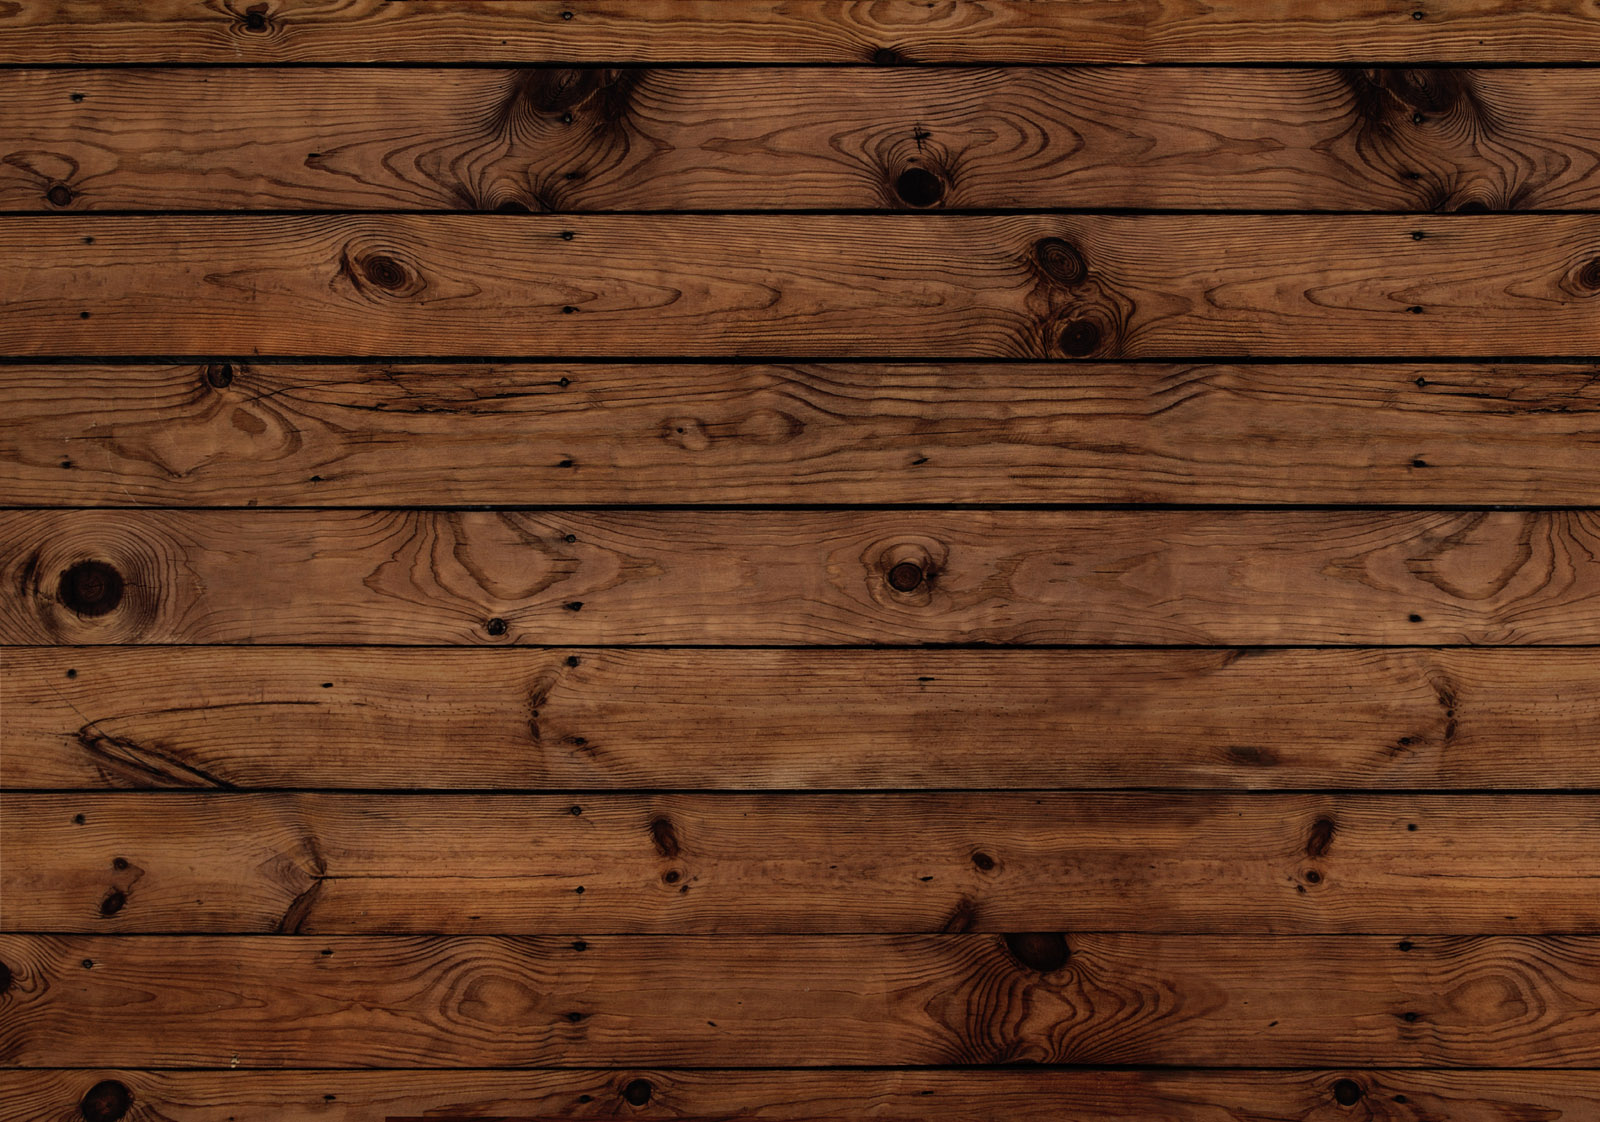 Darkwood Plank Photo Floor Prop Inspire Me Baby Store 1600x1122